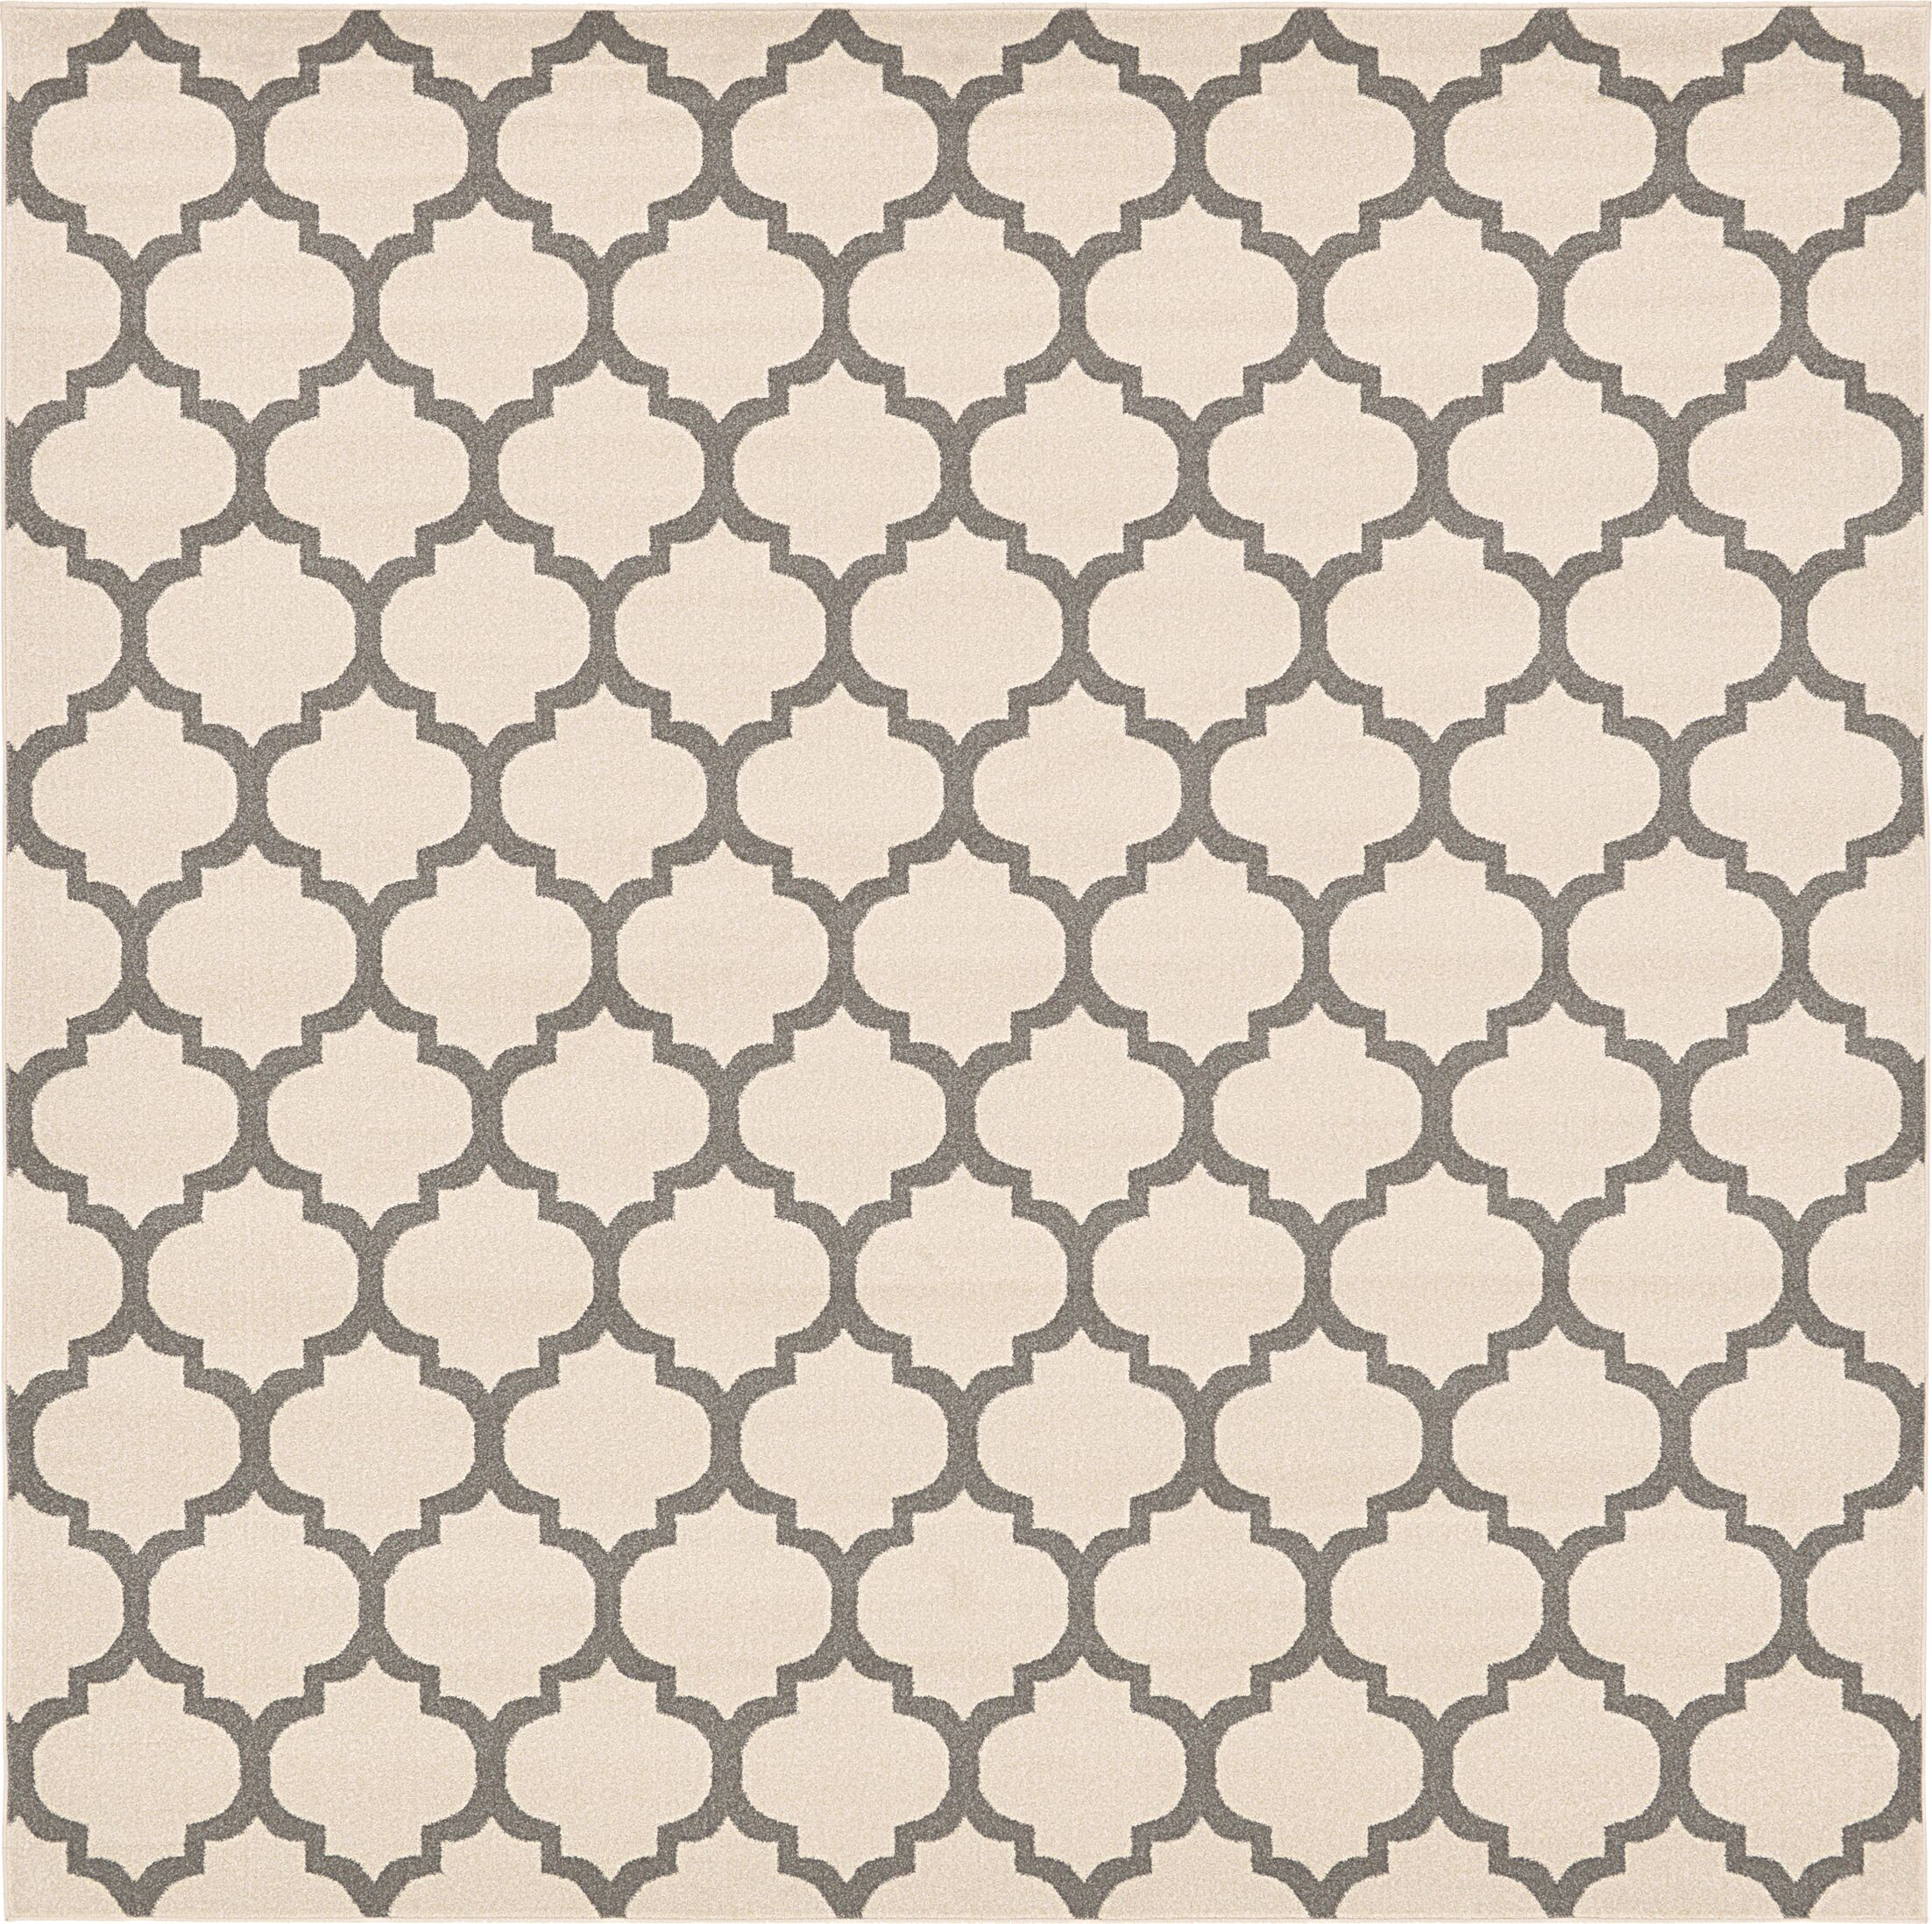 Moore Beige Area Rug Rug Size: Square 10'